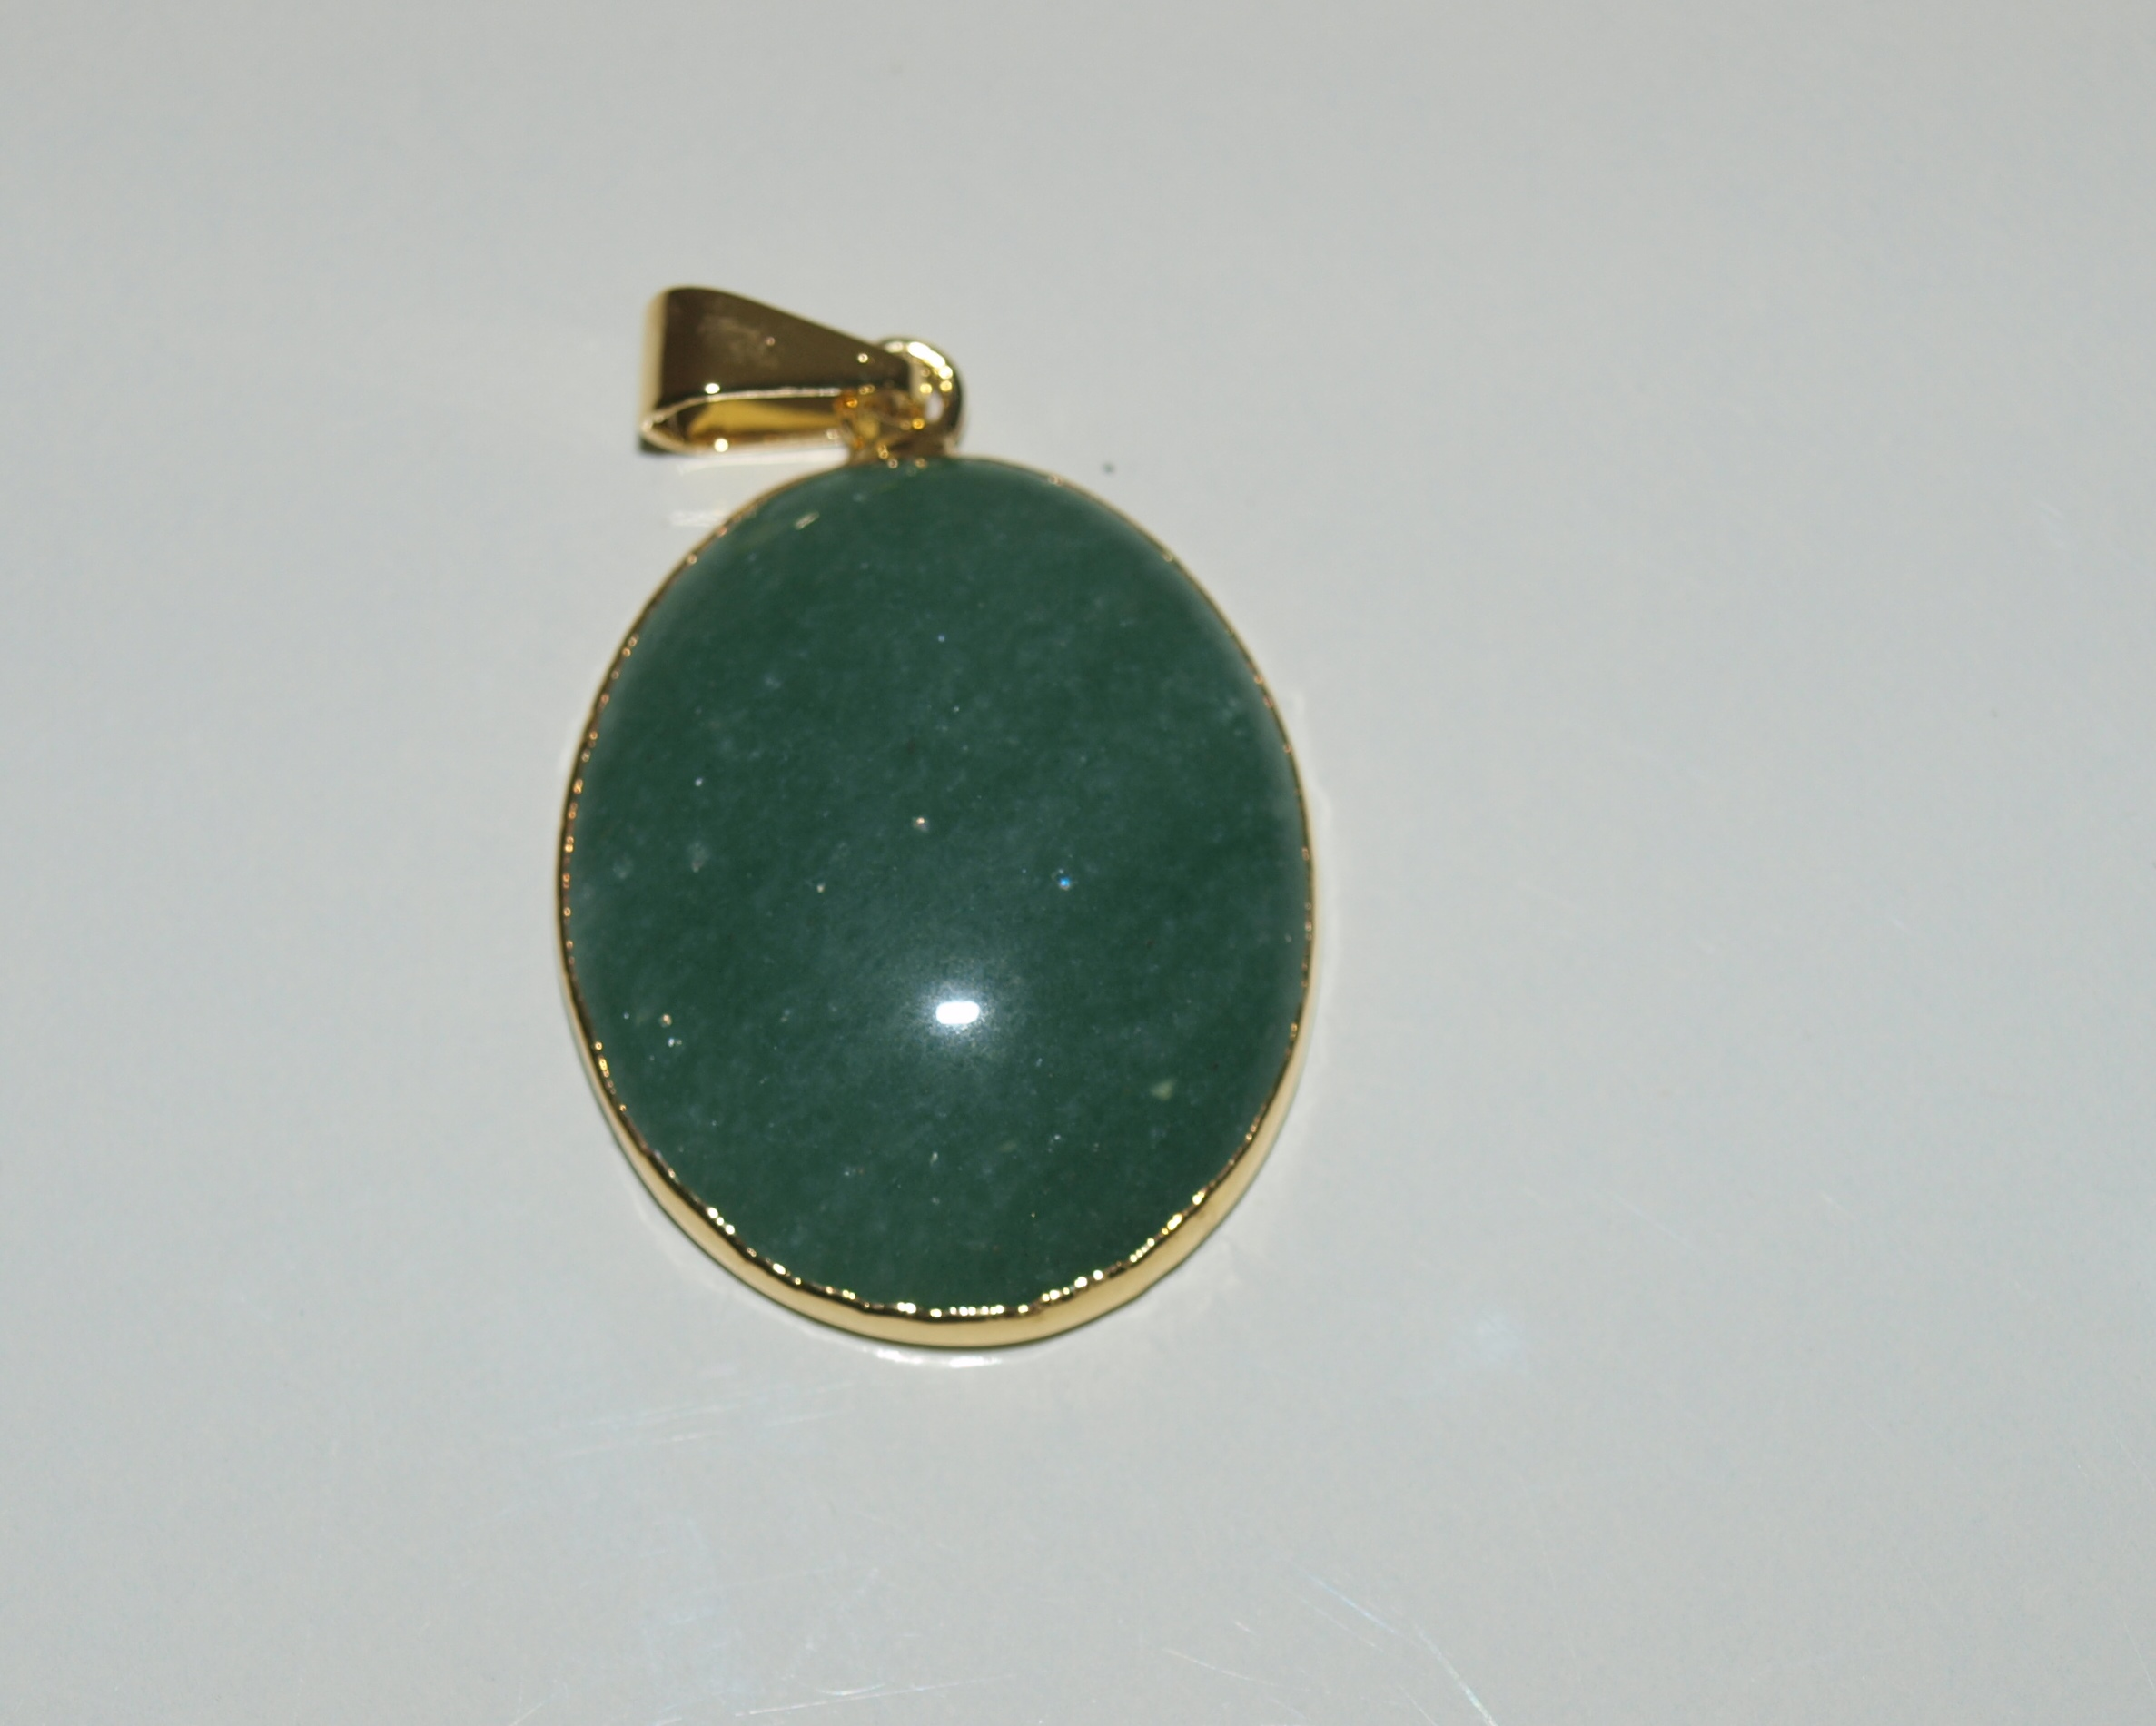 Stones from Uruguay - Green aventurine Oval Cabochon Pendant, 30x20mm, Gold Plated